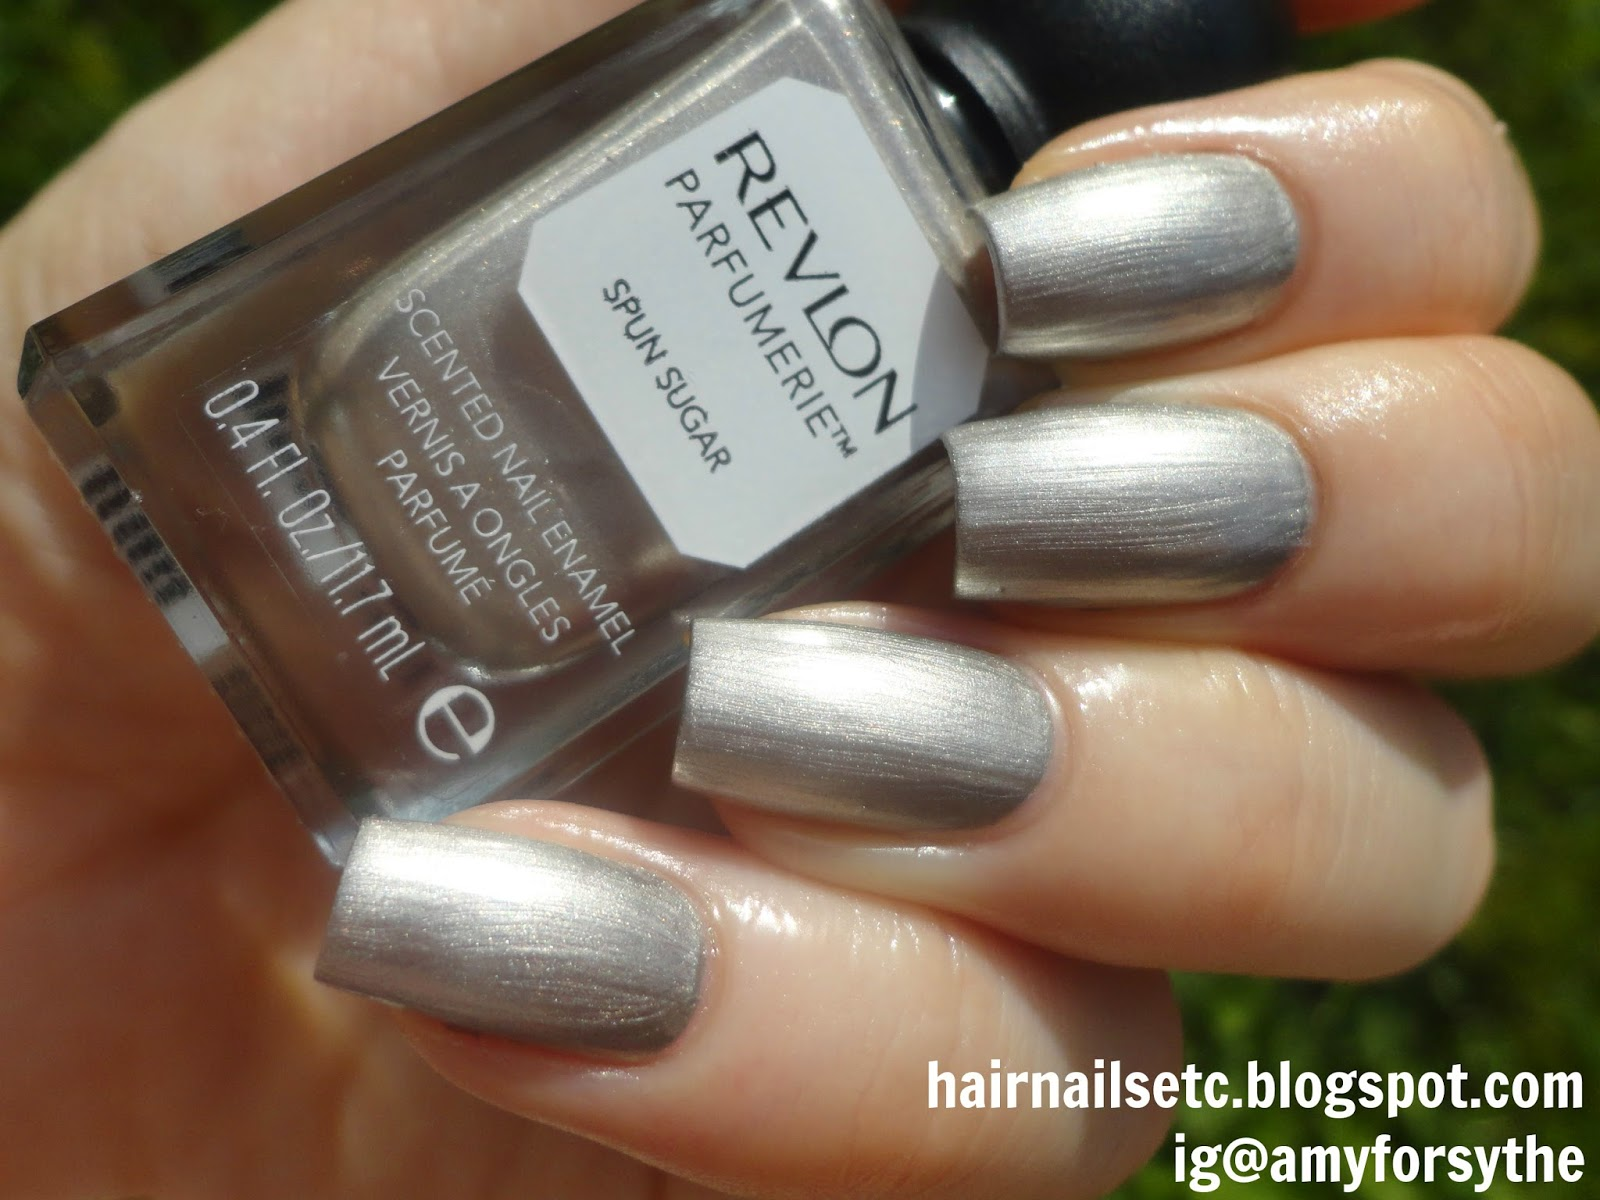 Swatch and review of Revlon Parfumerie Nail Enamel Varnish Polish in Spun Sugar